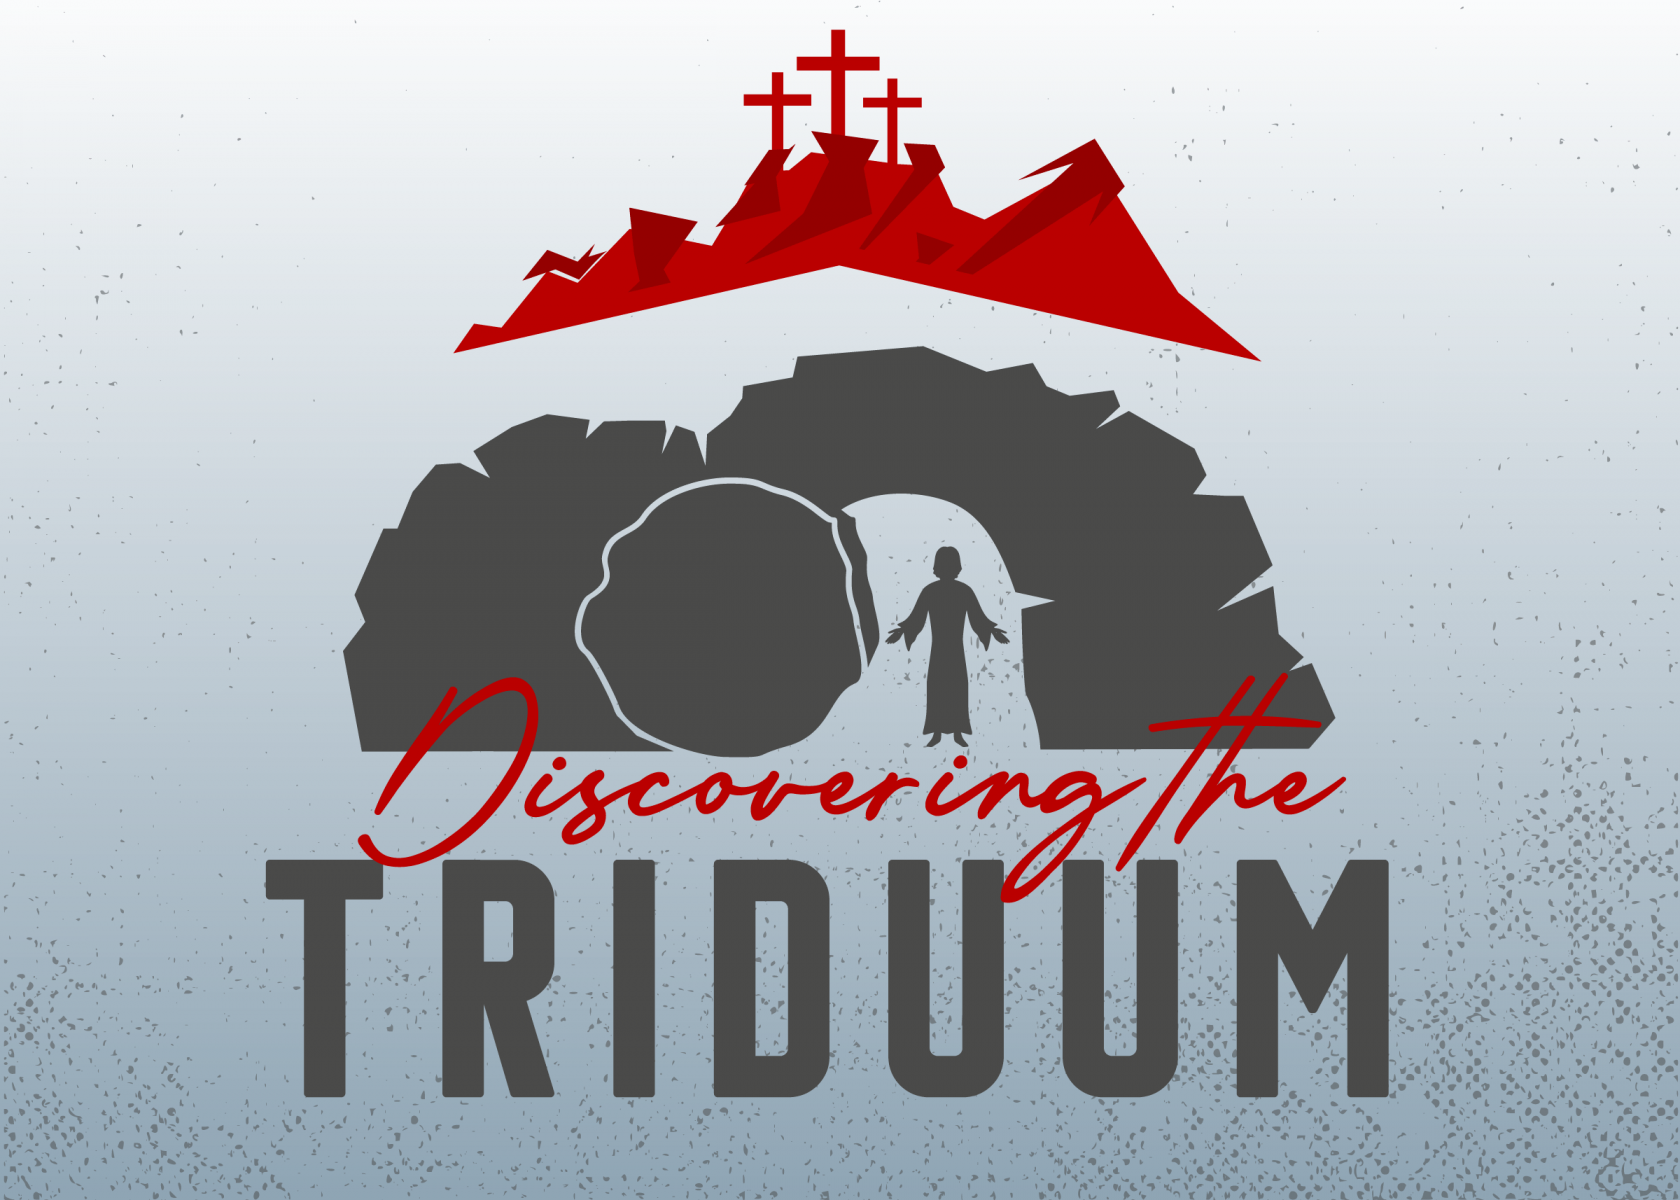 Discovering the Triduum